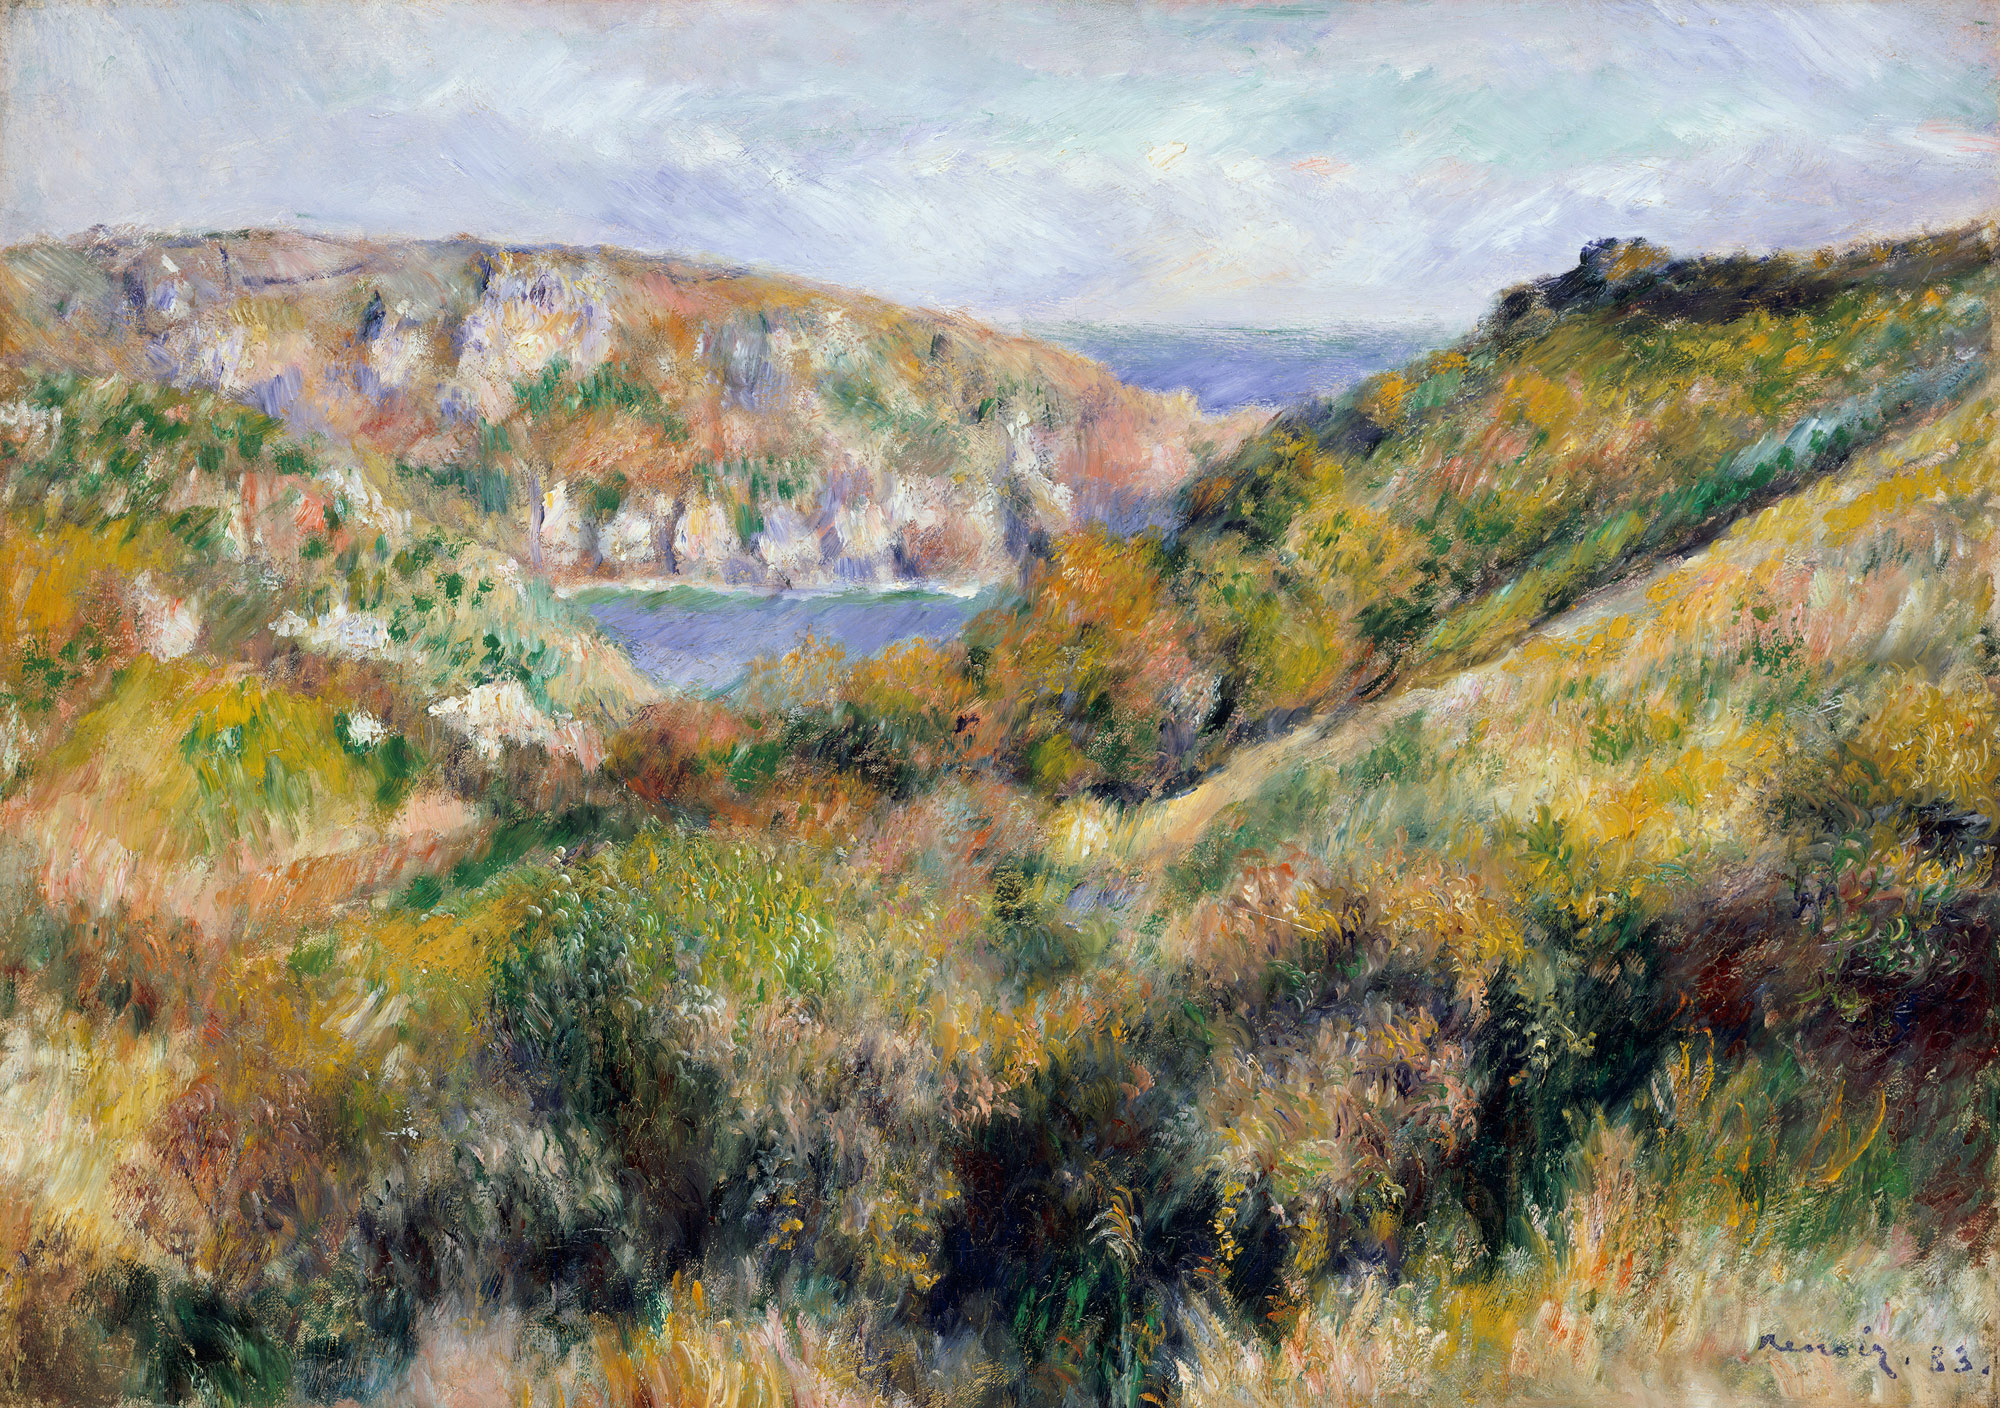 e renoir 1841 1919 essay heilbrunn timeline of art hills around the bay of moulin huet